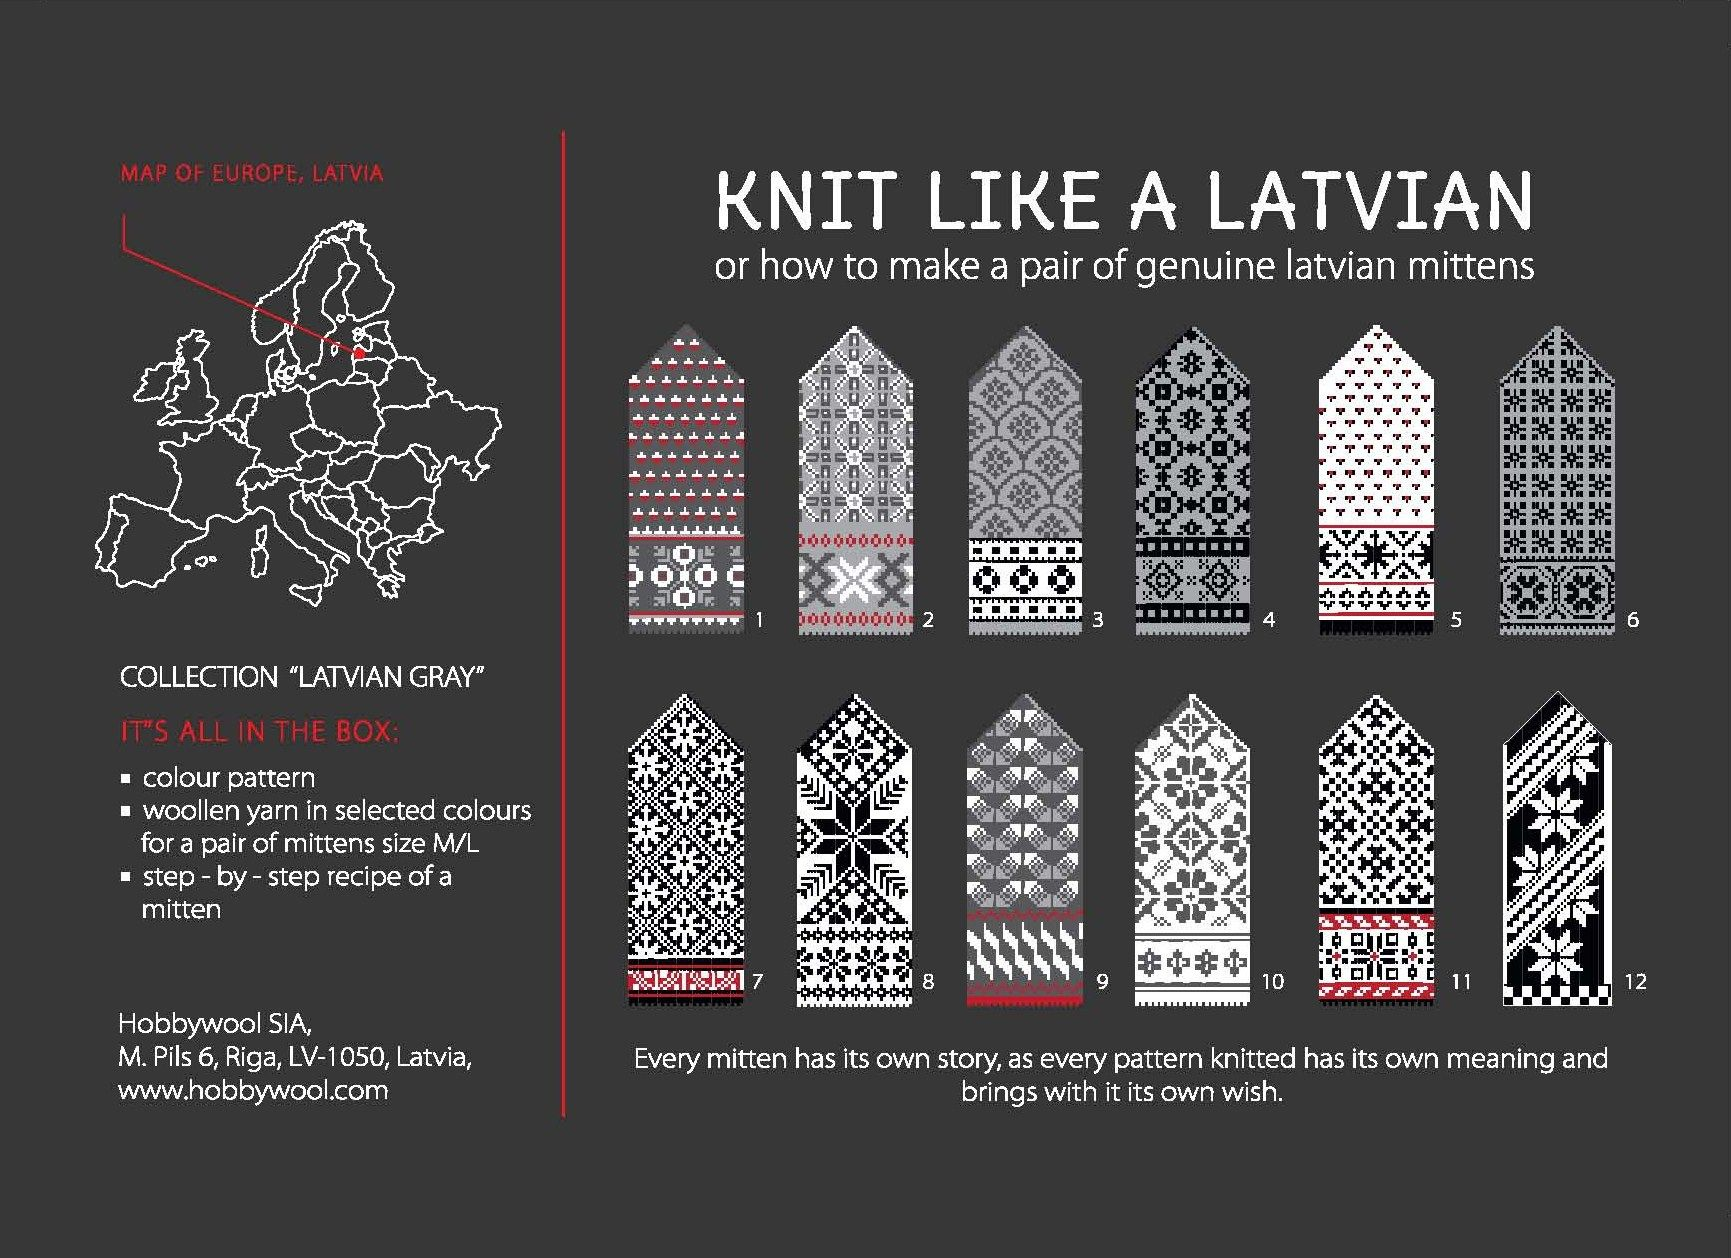 "With this kit You will learn how to make a pair of genuine latvian mittens. In ""Knit Like a Latvian"" box You will find: - colour pattern - woollen yarn in selected colours for a pair of mittens size M/L - step - by – step recipe of a mitten https://www.etsy.com/listing/126774128/the-latvian-traditional-mitten-pattern?ref=shop_home_active"